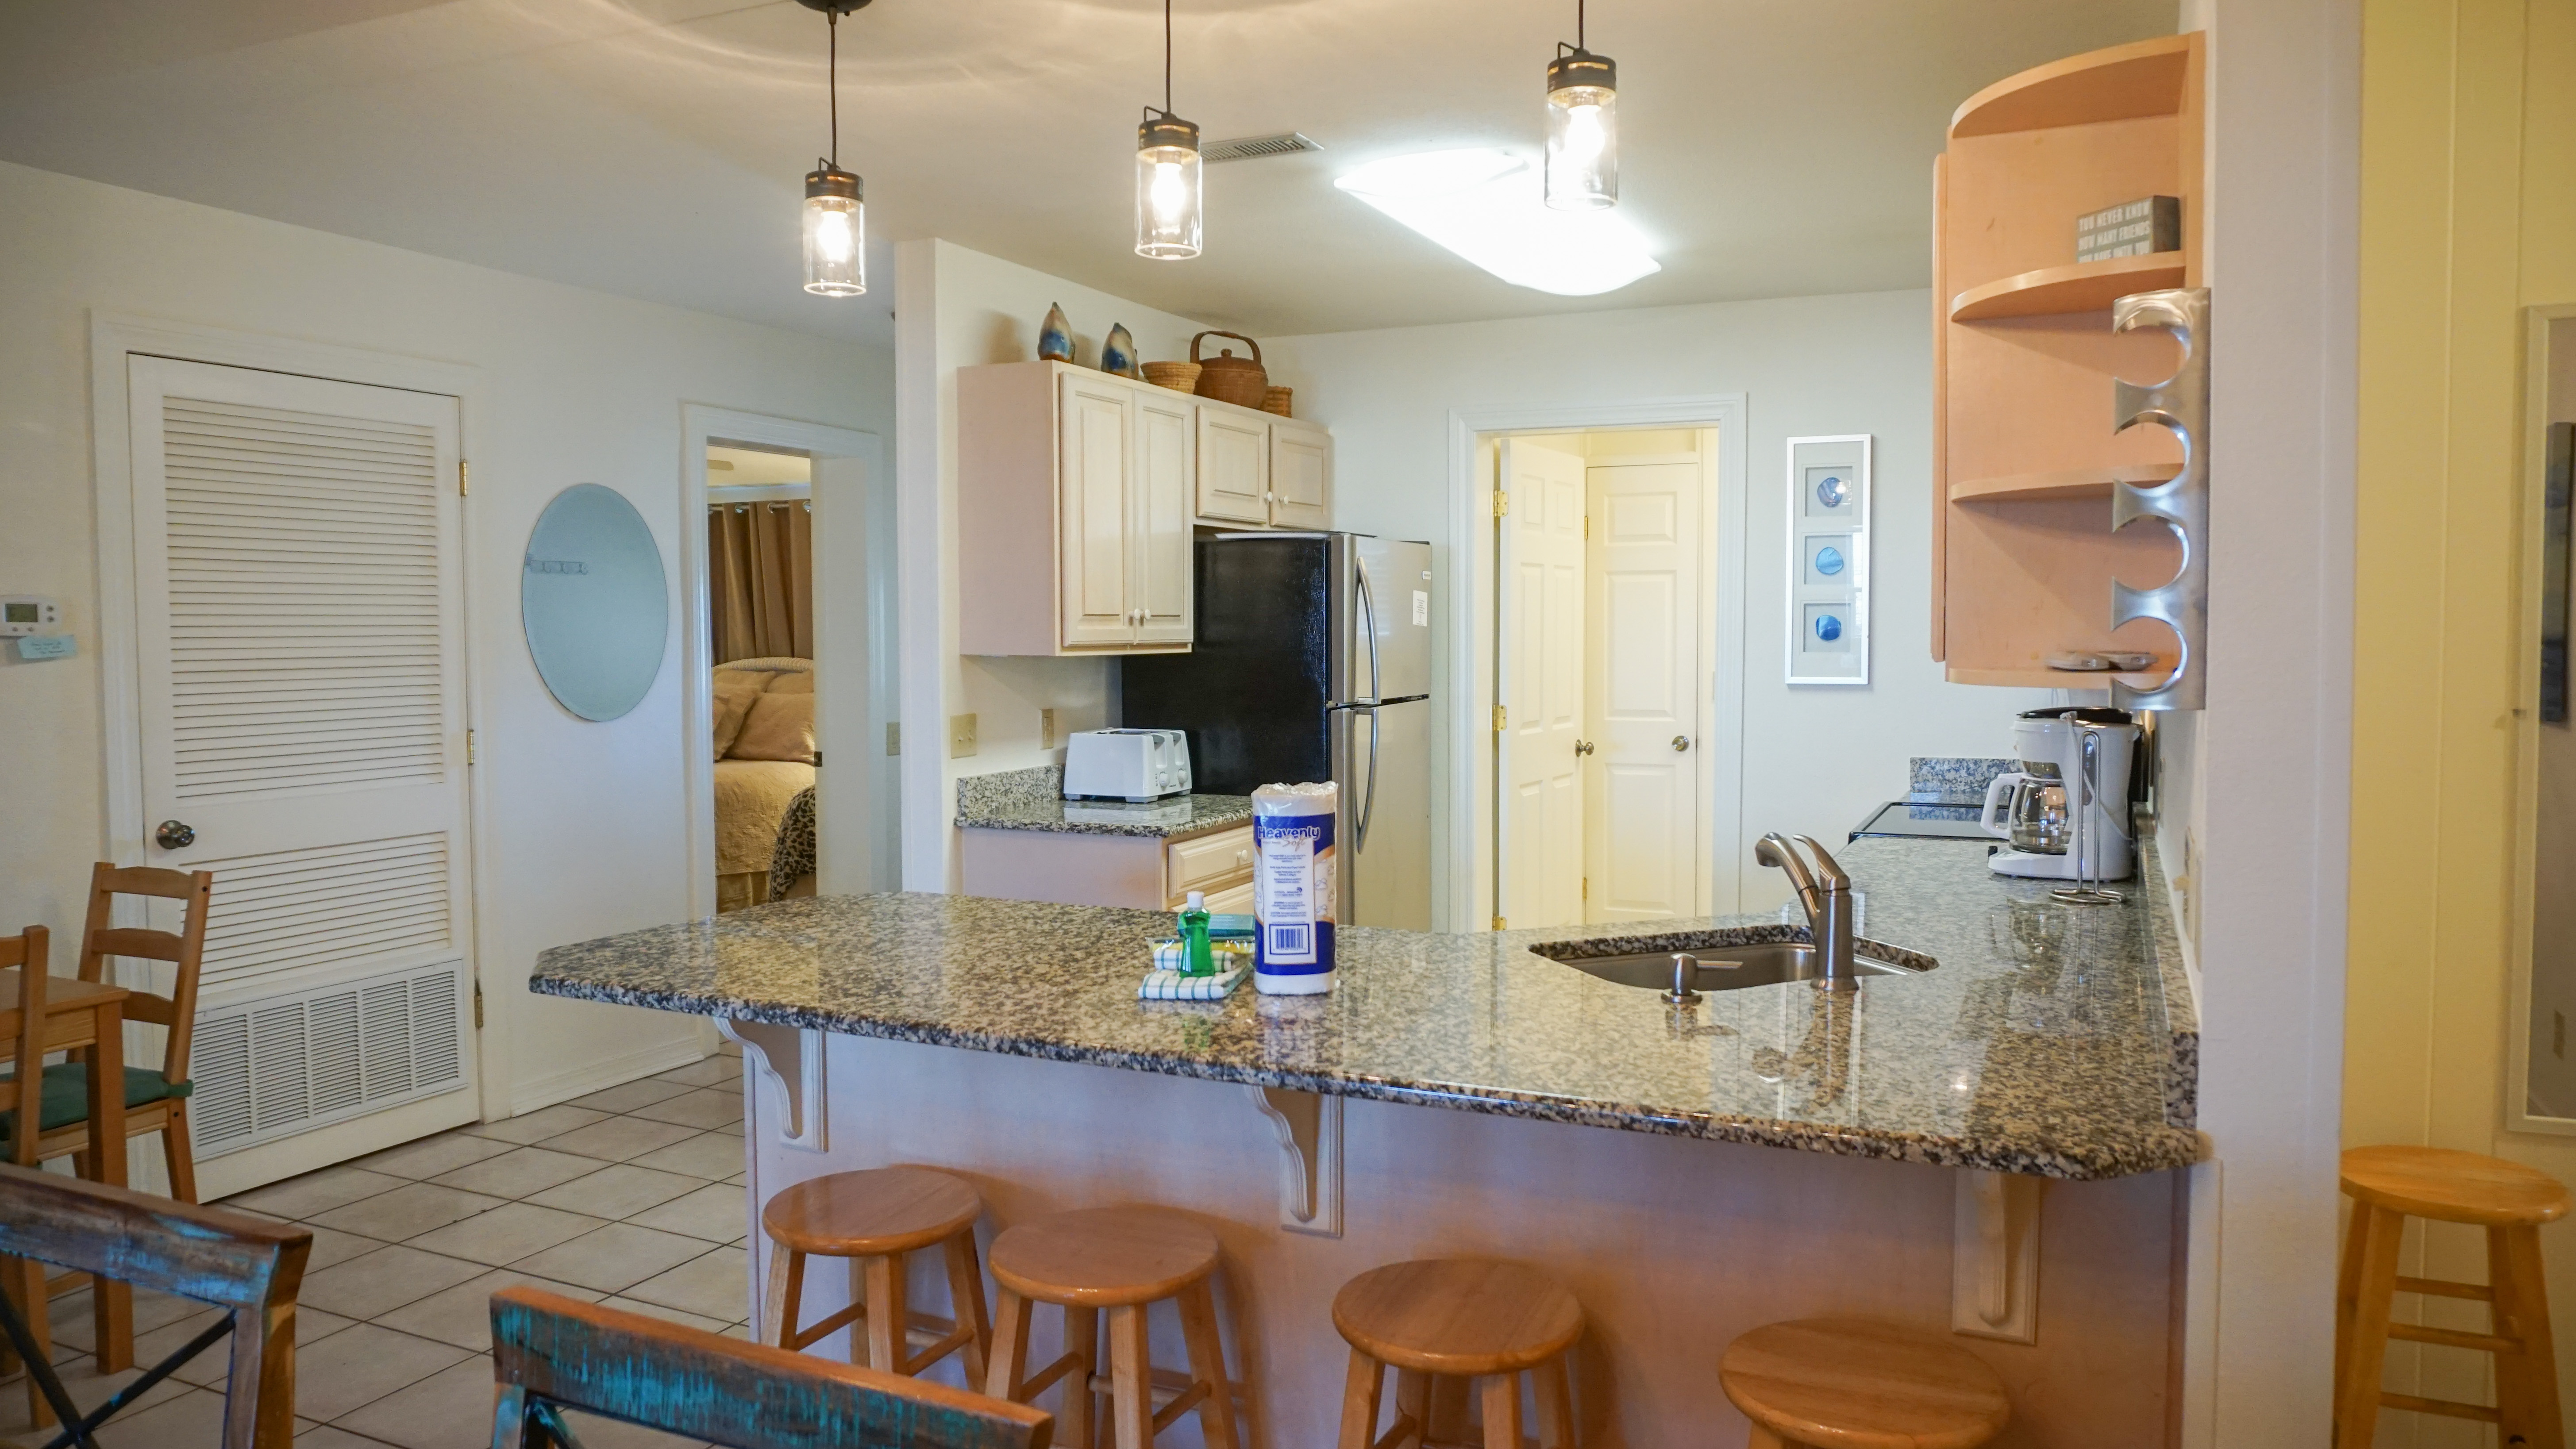 Avenida 14 - 402 House / Cottage rental in Pensacola Beach House Rentals in Pensacola Beach Florida - #11